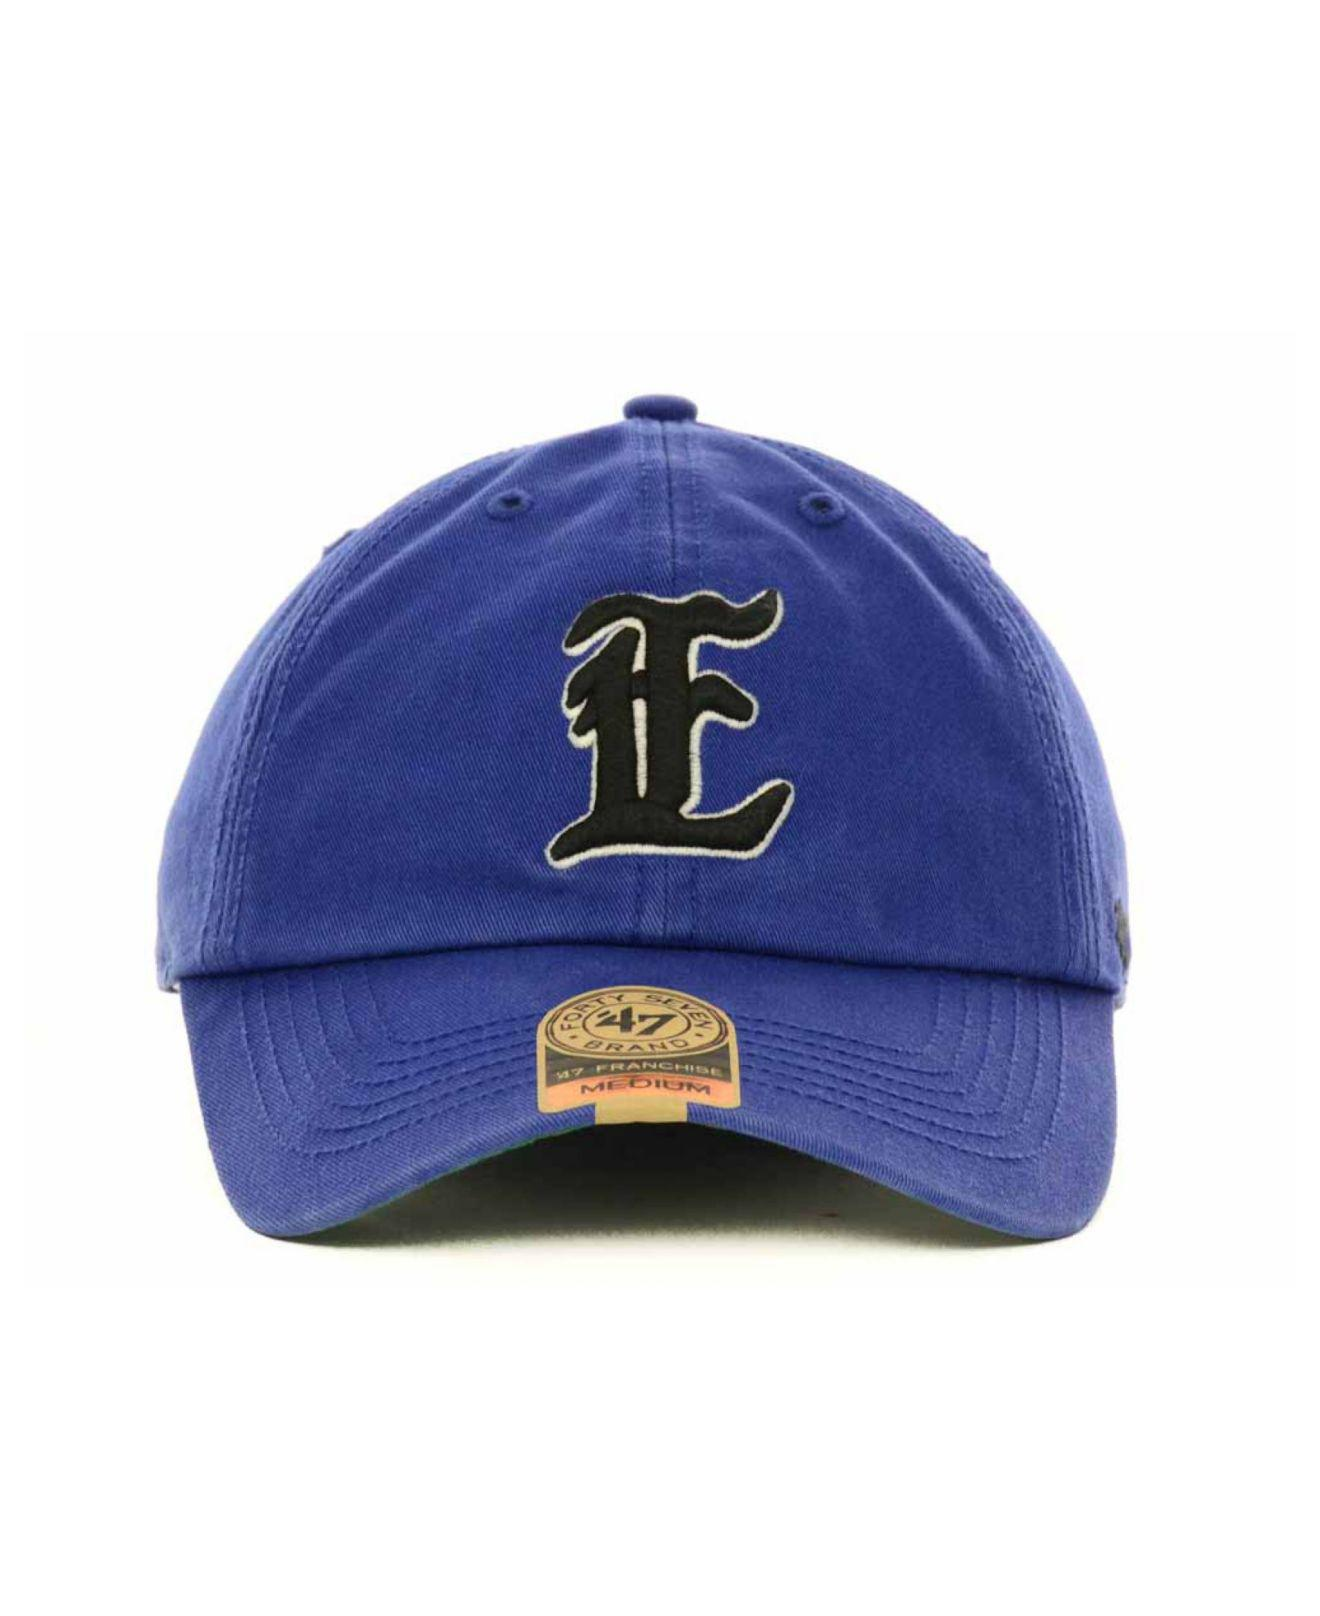 release date 7ec3e 212db ... best lyst 47 brand eastern illinois panthers ncaa 47 franchise cap in  blue for men c6f3f